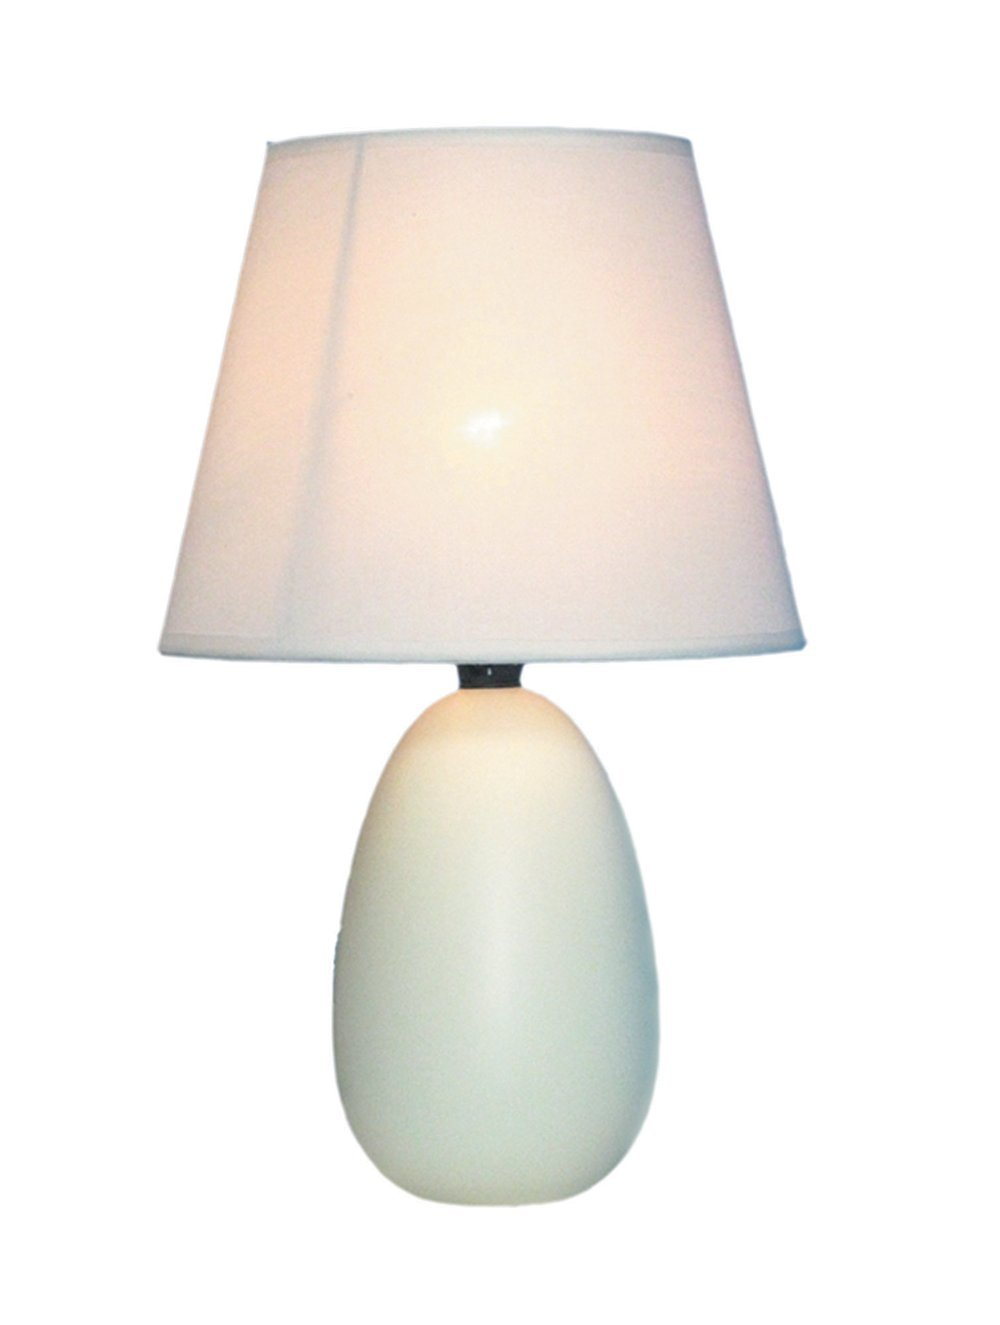 simple designs lt2009 off mini oval egg ceramic table lamp off white ebay. Black Bedroom Furniture Sets. Home Design Ideas